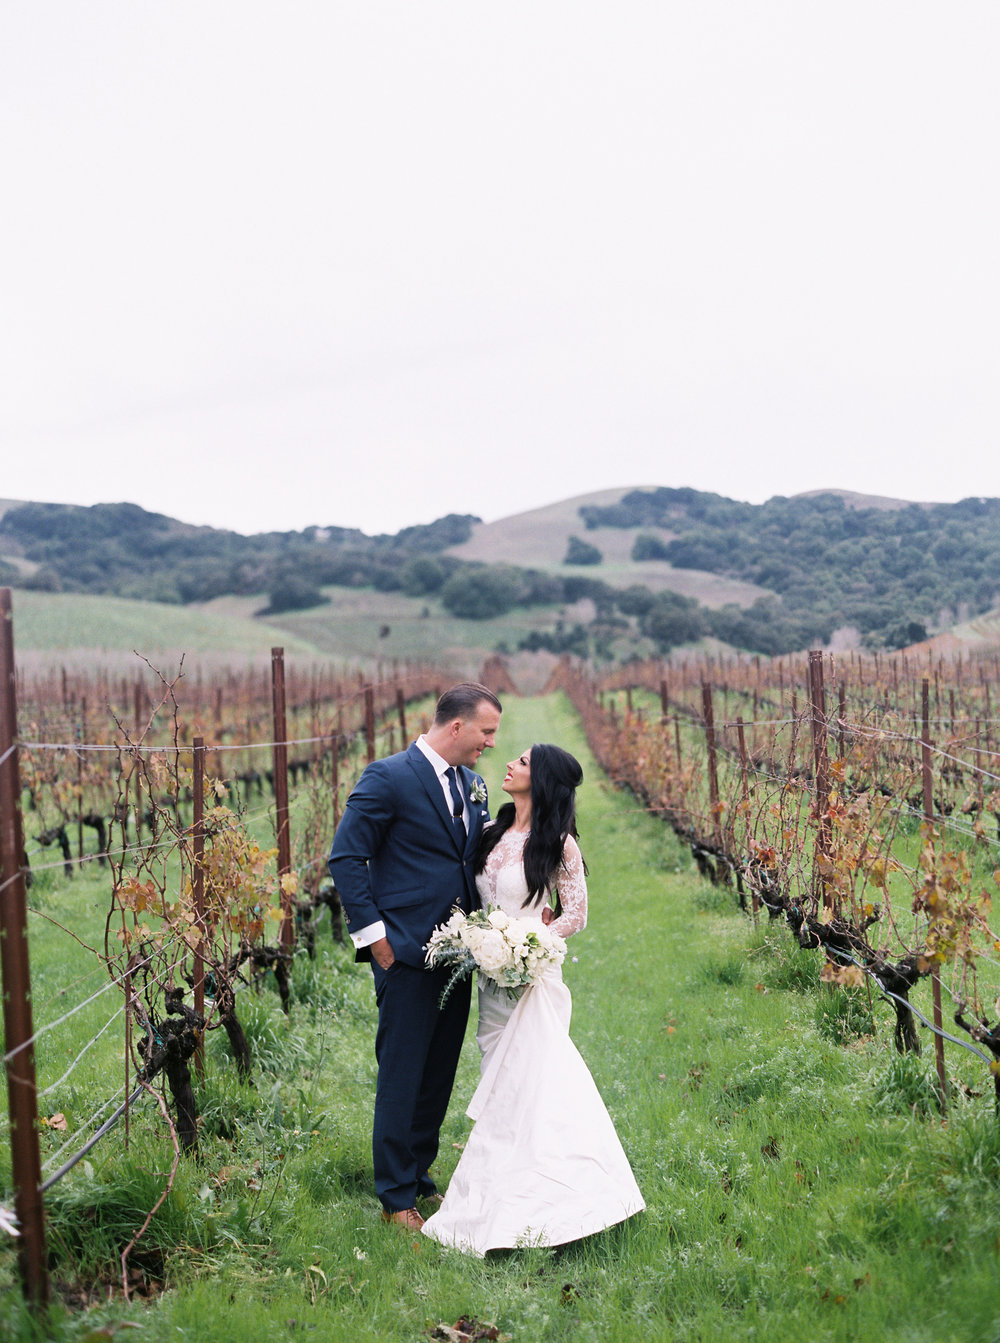 romantic-wedding-at-cline-winery-in-sonoma-california-1-19.jpg